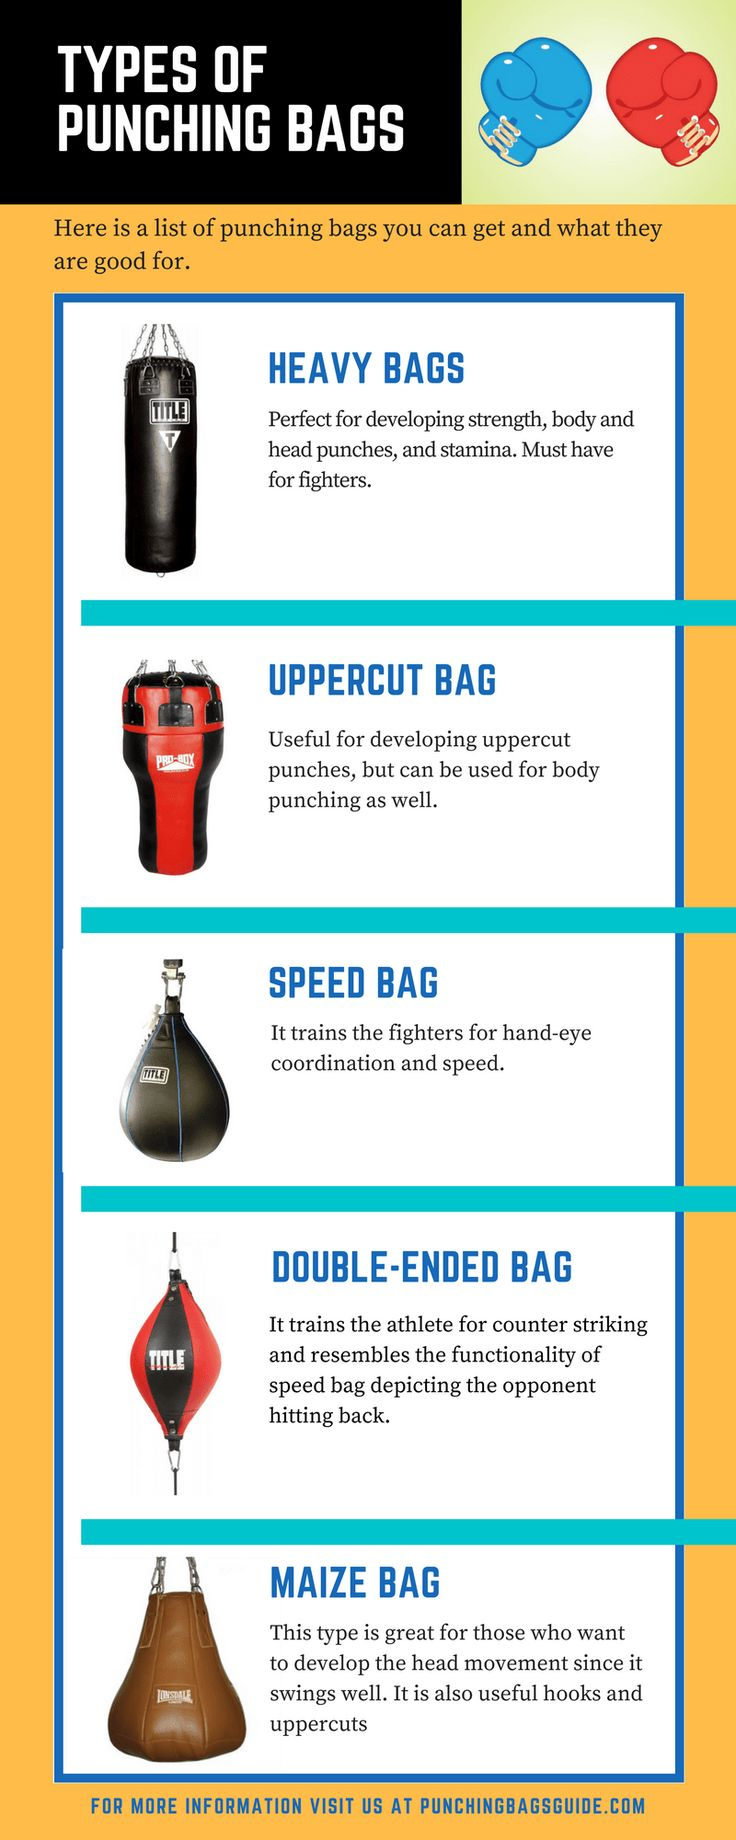 What Punching Bag Should I Get? | All You Need to Know http://punchingbagsguide.com/what-bag-should-i-get/ #punchbag #homegym